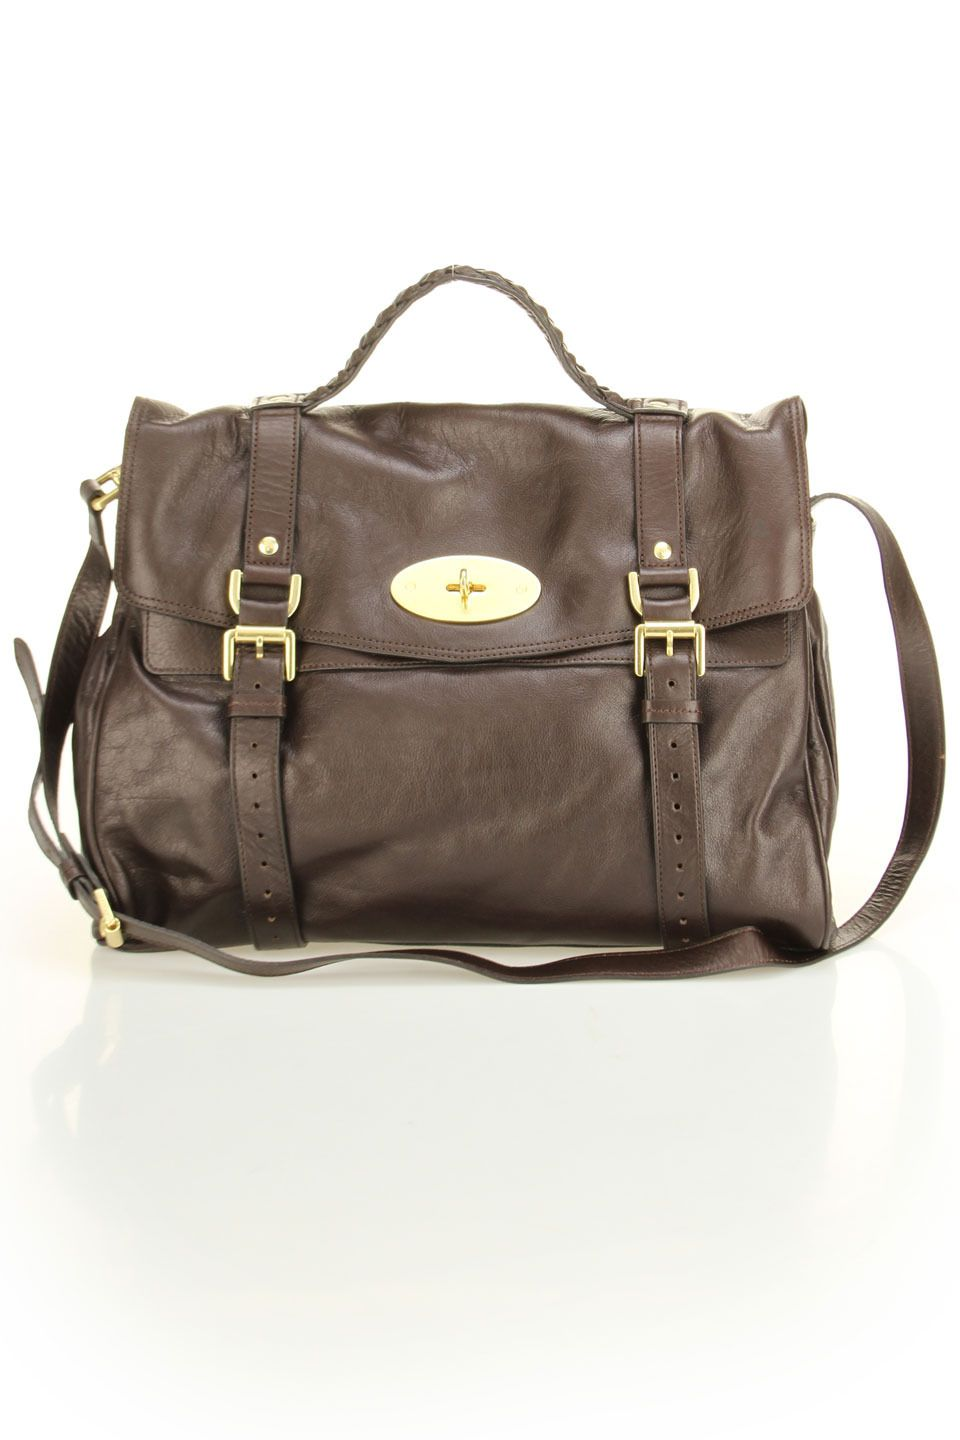 2d24323a2dd Mulberry Oversized Alexa Soft Buffalo Shoulder Bag In Chocolate ...